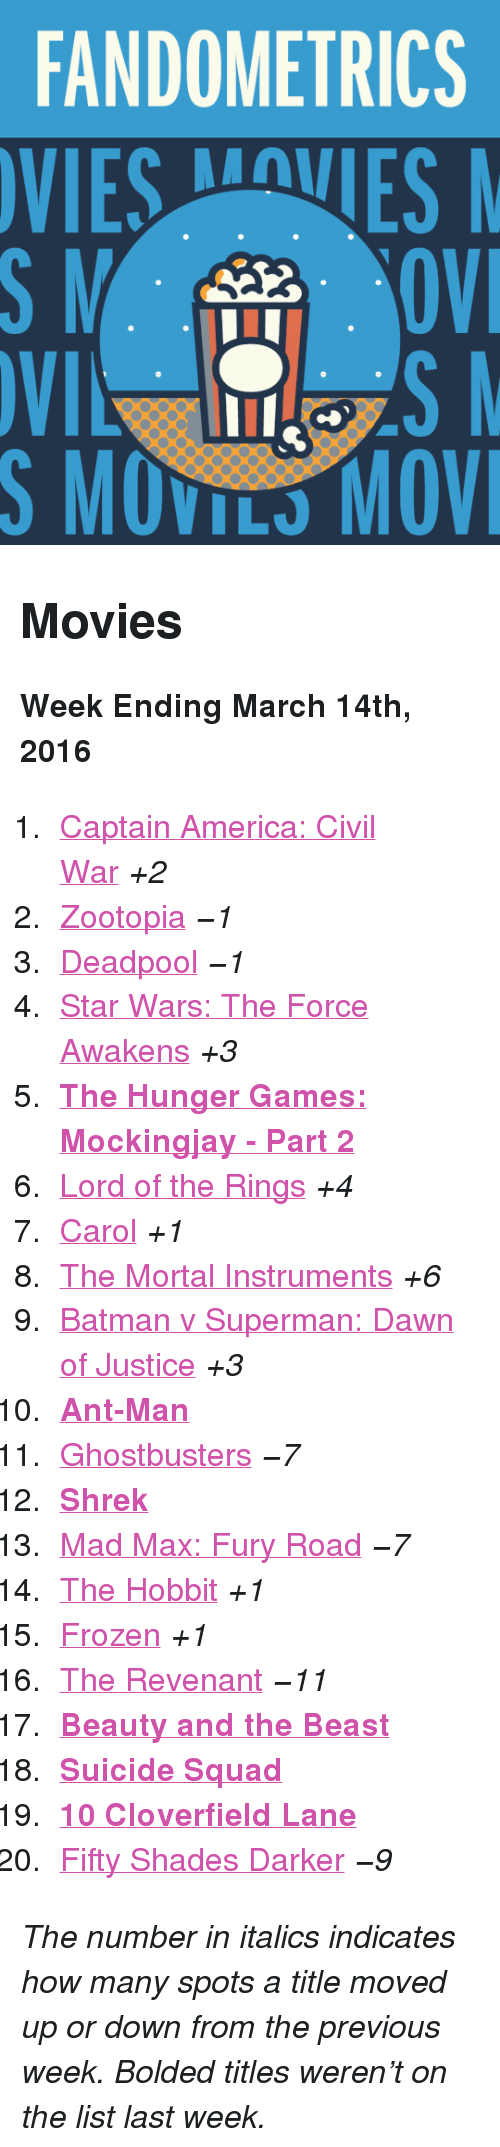 """10 Cloverfield Lane: FANDOMETRICS  VIESVES  S MOVILS MOV <h2>Movies</h2><p><b>Week Ending March 14th, 2016</b></p><ol><li><a href=""""http://www.tumblr.com/search/captain%20america%20civil%20war"""">Captain America: Civil War</a><i>+2</i></li>  <li><a href=""""http://www.tumblr.com/search/zootopia"""">Zootopia</a><i>−1</i></li>  <li><a href=""""http://www.tumblr.com/search/deadpool"""">Deadpool</a><i>−1</i></li>  <li><a href=""""http://www.tumblr.com/search/the%20force%20awakens"""">Star Wars: The Force Awakens</a><i>+3</i></li>  <li><a href=""""http://www.tumblr.com/search/mockingjay""""><b>The Hunger Games: Mockingjay - Part 2</b></a></li>  <li><a href=""""http://www.tumblr.com/search/lotr"""">Lord of the Rings</a><i>+4</i></li>  <li><a href=""""http://www.tumblr.com/search/carol"""">Carol</a><i>+1</i></li>  <li><a href=""""http://www.tumblr.com/search/the%20mortal%20instruments"""">The Mortal Instruments</a><i>+6</i></li>  <li><a href=""""http://www.tumblr.com/search/batman%20v%20superman"""">Batman v Superman: Dawn of Justice</a><i>+3</i></li>  <li><a href=""""http://www.tumblr.com/search/ant%20man""""><b>Ant-Man</b></a></li>  <li><a href=""""http://www.tumblr.com/search/ghostbusters"""">Ghostbusters</a><i>−7</i></li>  <li><a href=""""http://www.tumblr.com/search/shrek""""><b>Shrek</b></a></li>  <li><a href=""""http://www.tumblr.com/search/mad%20max"""">Mad Max: Fury Road</a><i>−7</i></li>  <li><a href=""""http://www.tumblr.com/search/the%20hobbit"""">The Hobbit</a><i>+1</i></li>  <li><a href=""""http://www.tumblr.com/search/frozen"""">Frozen</a><i>+1</i></li>  <li><a href=""""http://www.tumblr.com/search/the%20revenant"""">The Revenant</a><i>−11</i></li>  <li><a href=""""http://www.tumblr.com/search/beauty%20and%20the%20beast""""><b>Beauty and the Beast</b></a></li>  <li><a href=""""http://www.tumblr.com/search/suicide%20squad""""><b>Suicide Squad</b></a></li>  <li><a href=""""http://www.tumblr.com/search/10%20cloverfield%20lane""""><b>10 Cloverfield Lane</b></a></li>  <li><a href=""""http://www.tumblr.com/search/fifty%20shades%20darker"""">Fifty Shades Darker</a><i>−9</i></li><"""